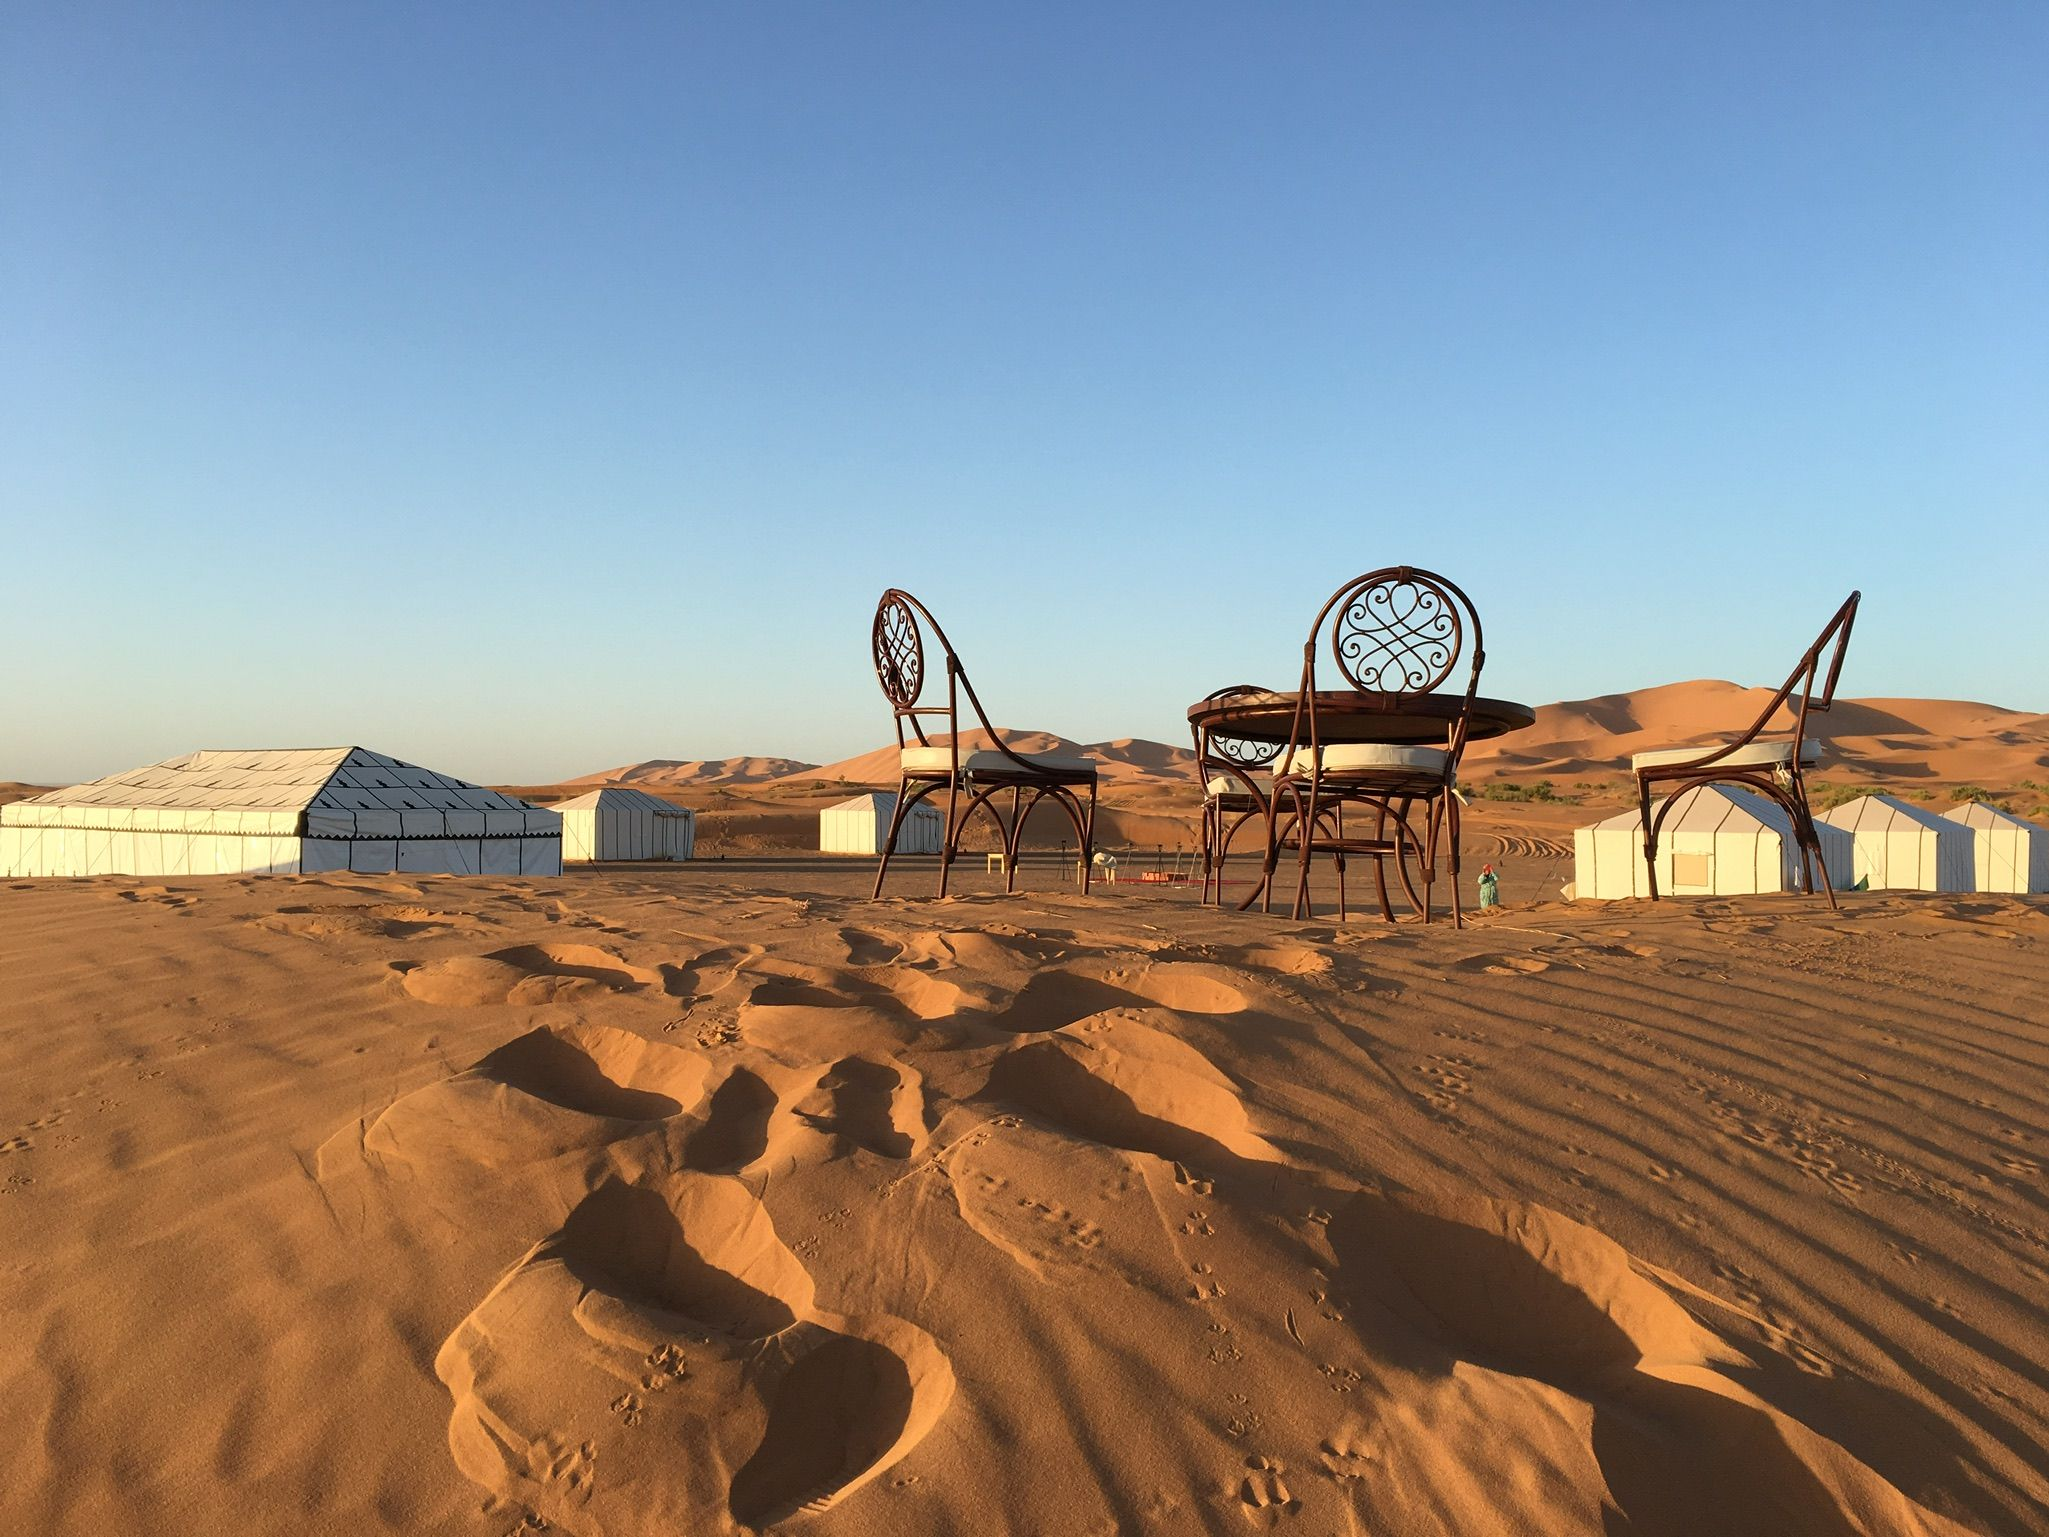 Merzouga Luxury desert & Desert Camps from Marrakech camps are in the heart of the desert, here you will experience what it is to be secluded in the middle of nowhere, just you, the stars and the camp fire http://luxury-tours-morocco.com/merzouga-desert-camp.php